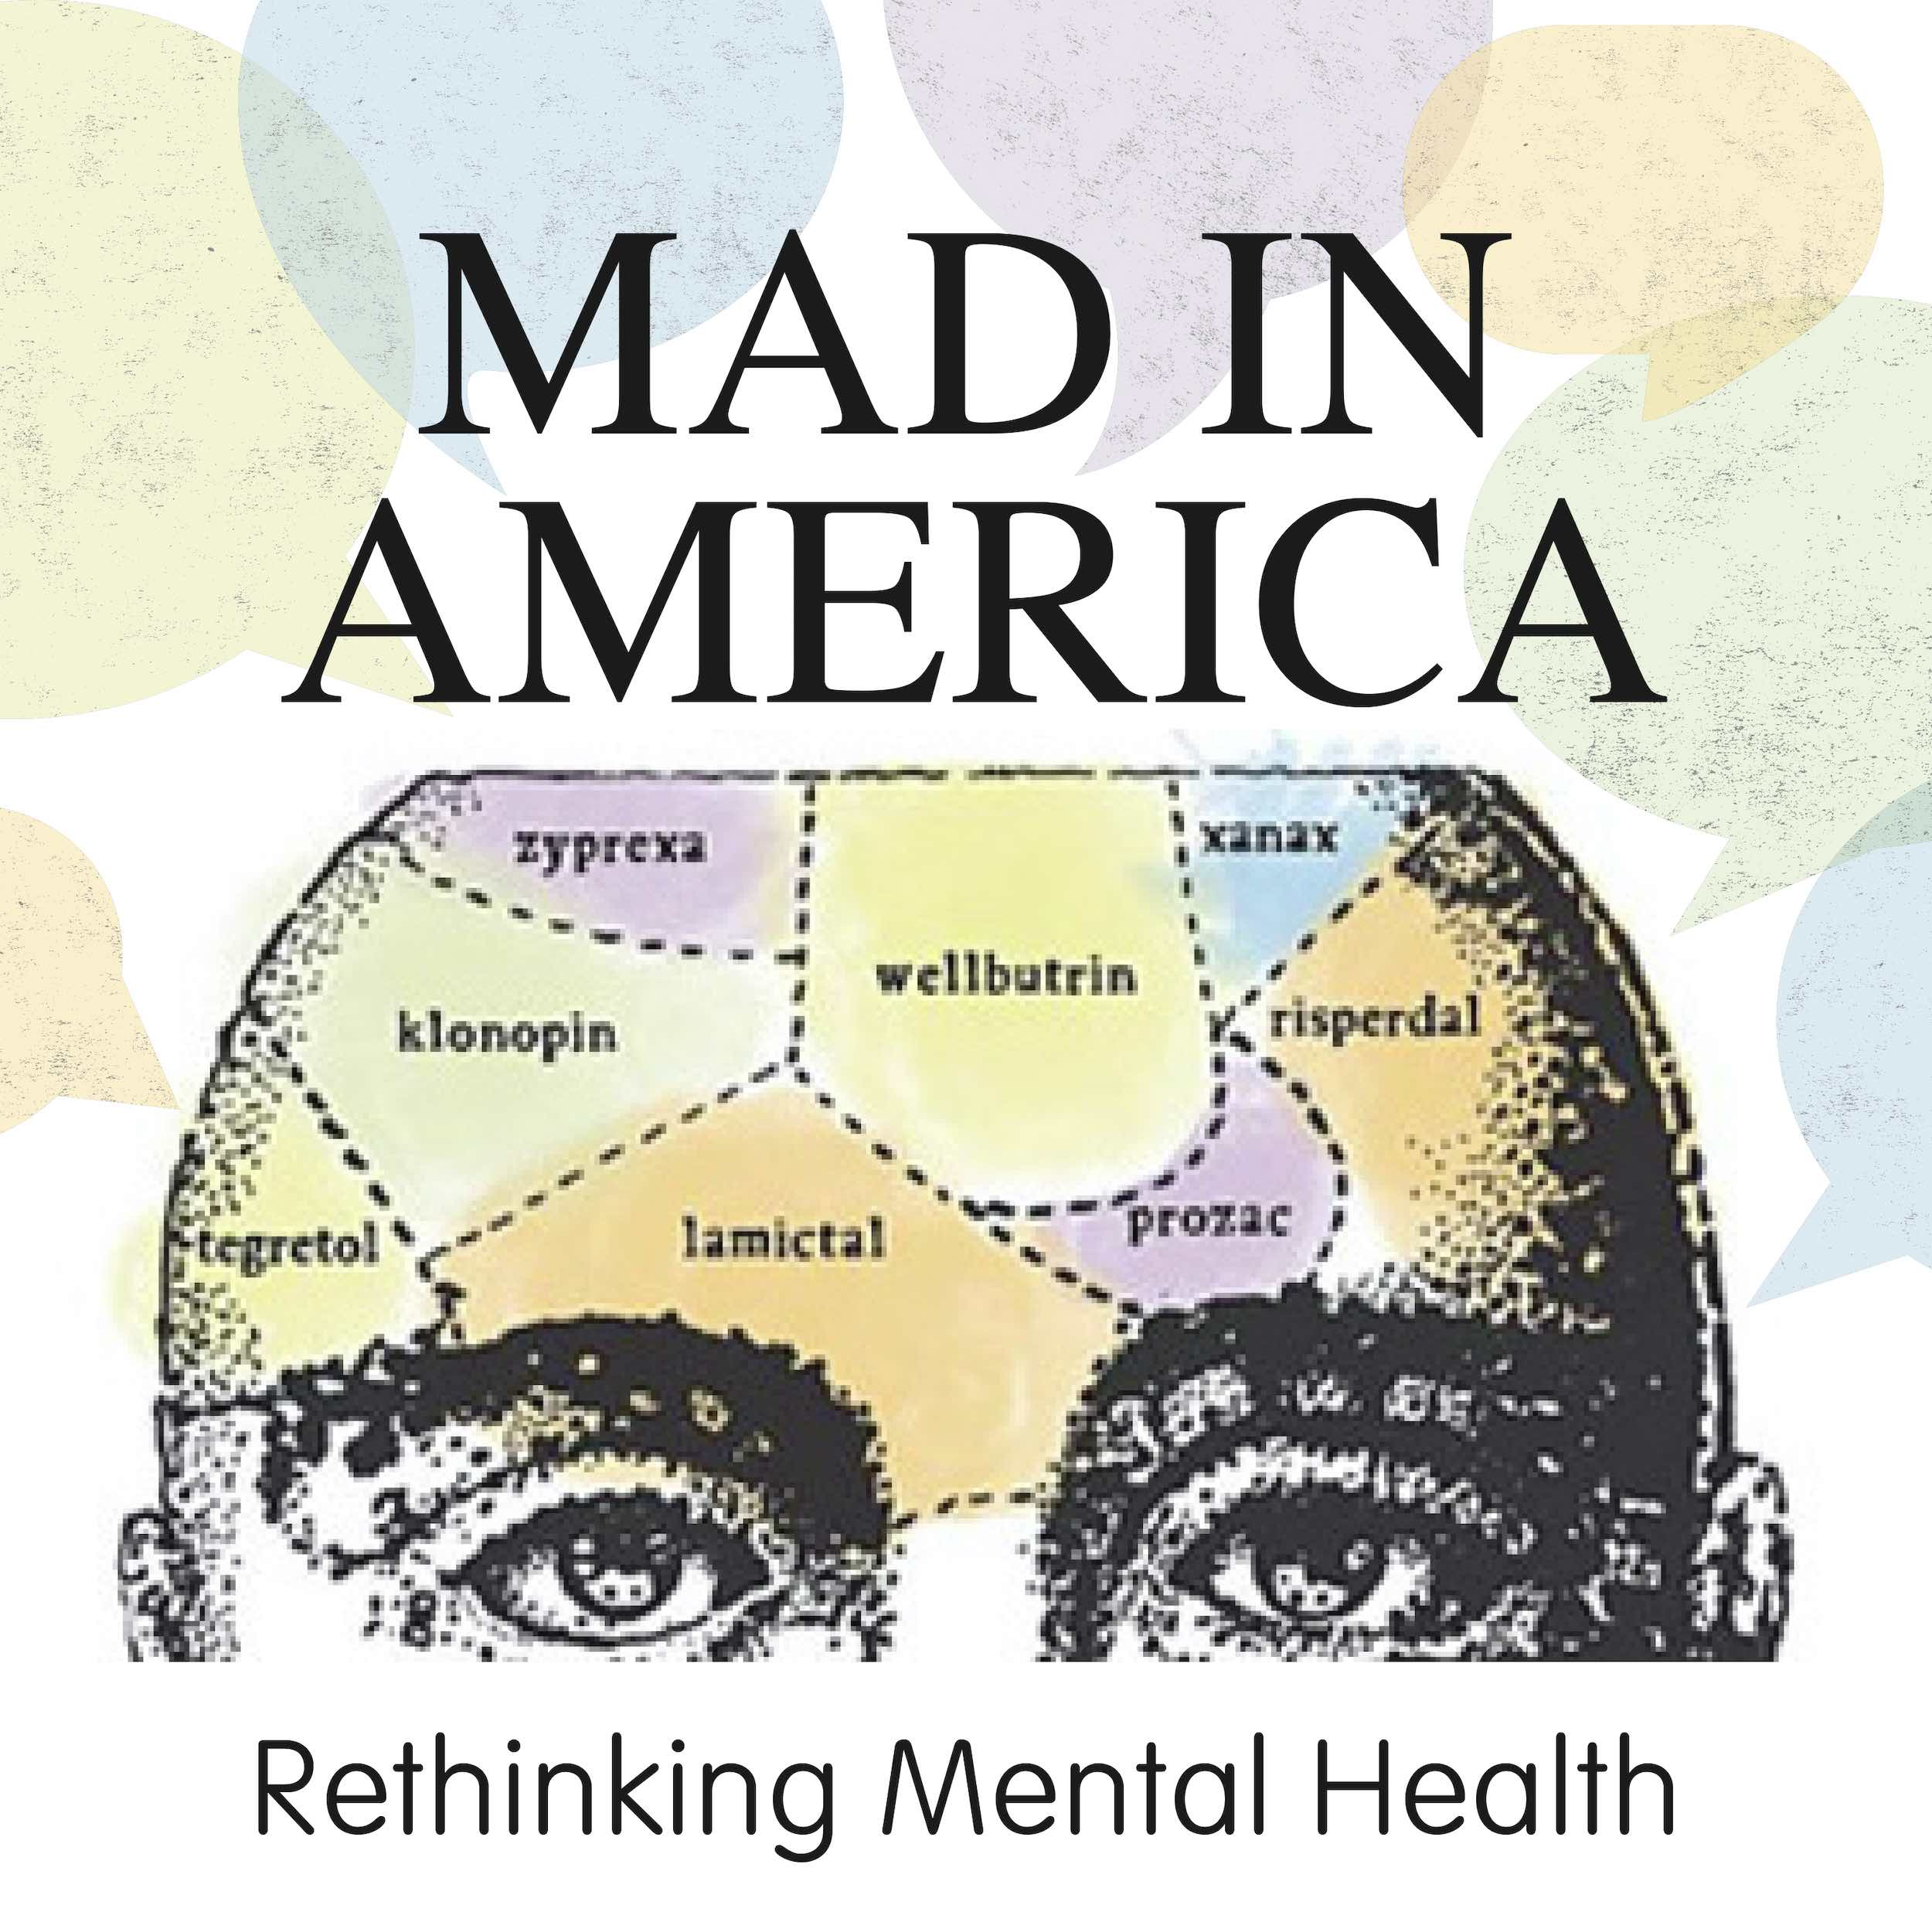 Mad in America: Rethinking Mental Health - Jill Nickens - The Akathisia Alliance for Education and Research